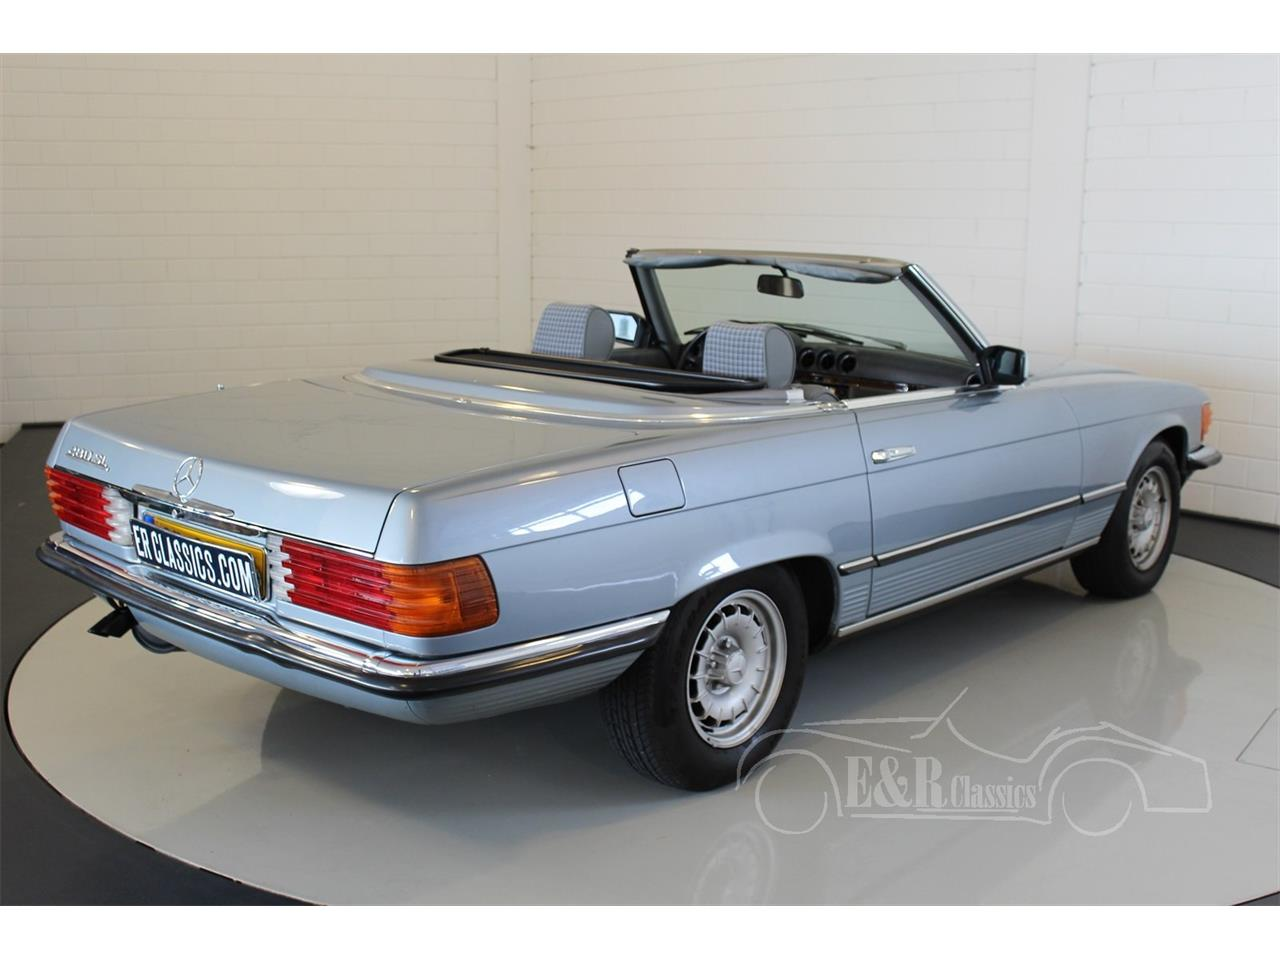 Large Picture of 1983 Mercedes-Benz 280SL located in noord brabant - $34,150.00 Offered by E & R Classics - QEBS